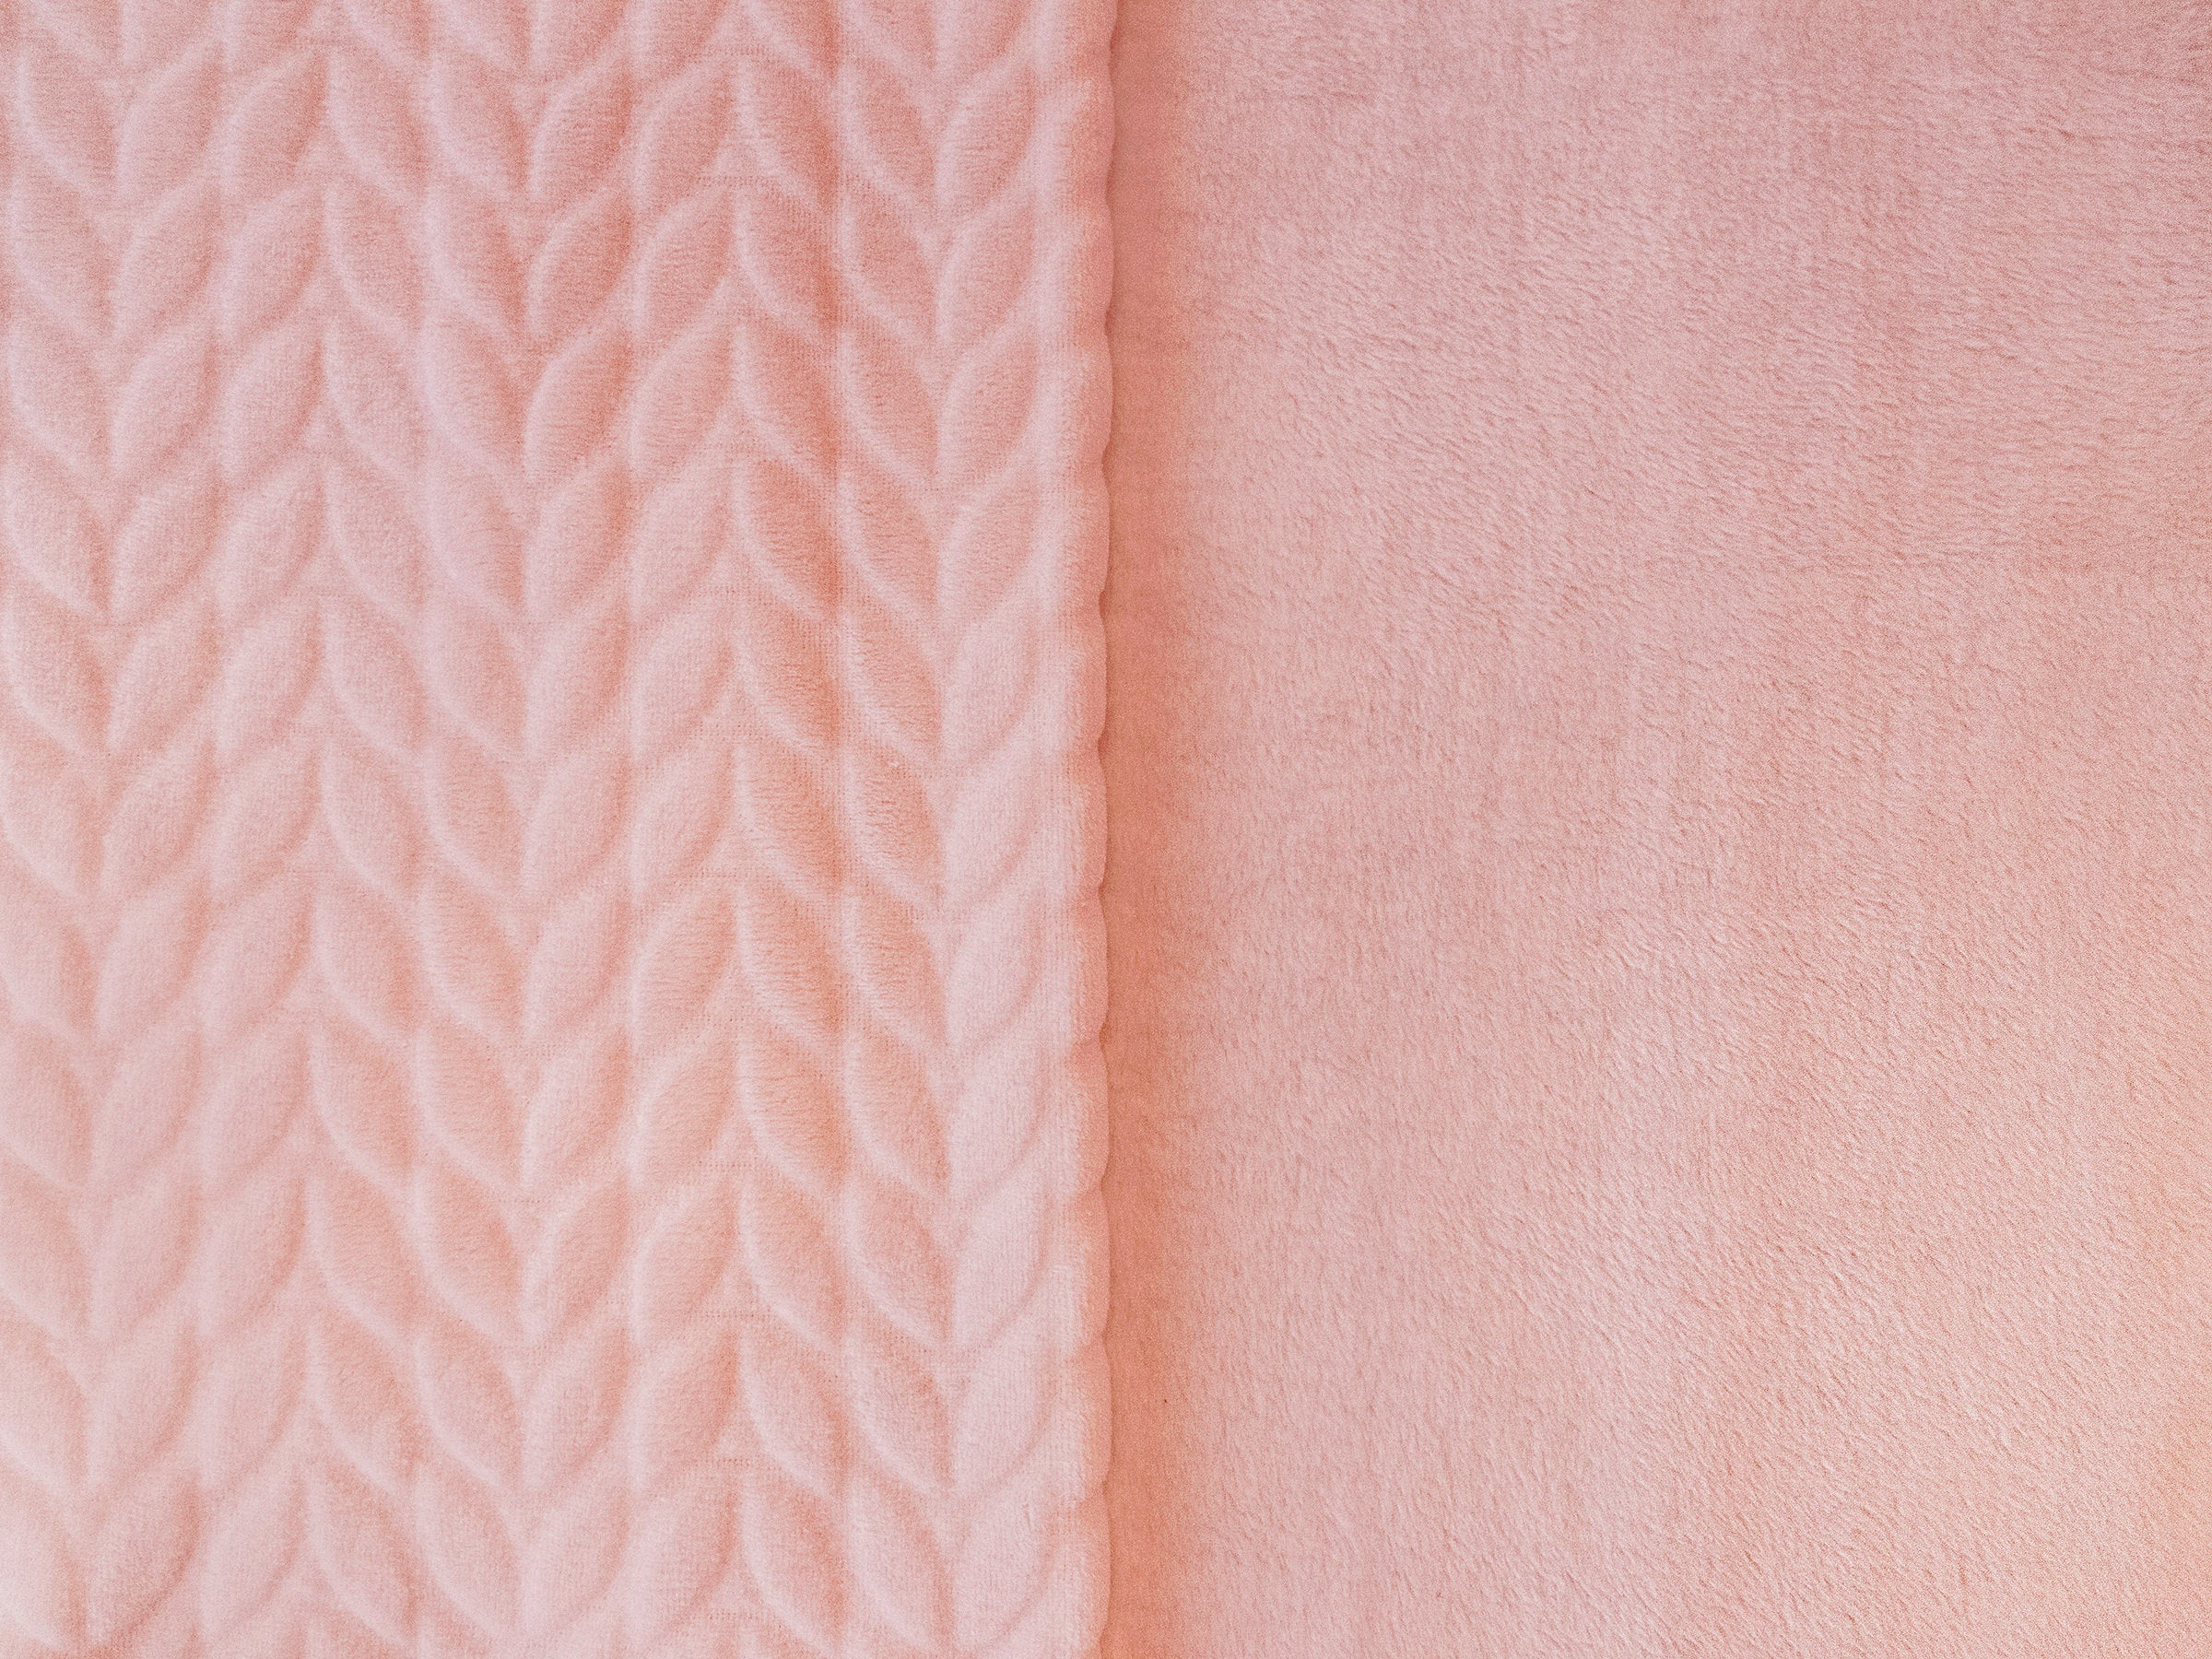 RTC Fabric 100% Polyester Squiggly Minky  Fleece, Med Pink, Blanket Fabric, Apparel Fabric, Nurcery Fabric, 60'', 245Gsm